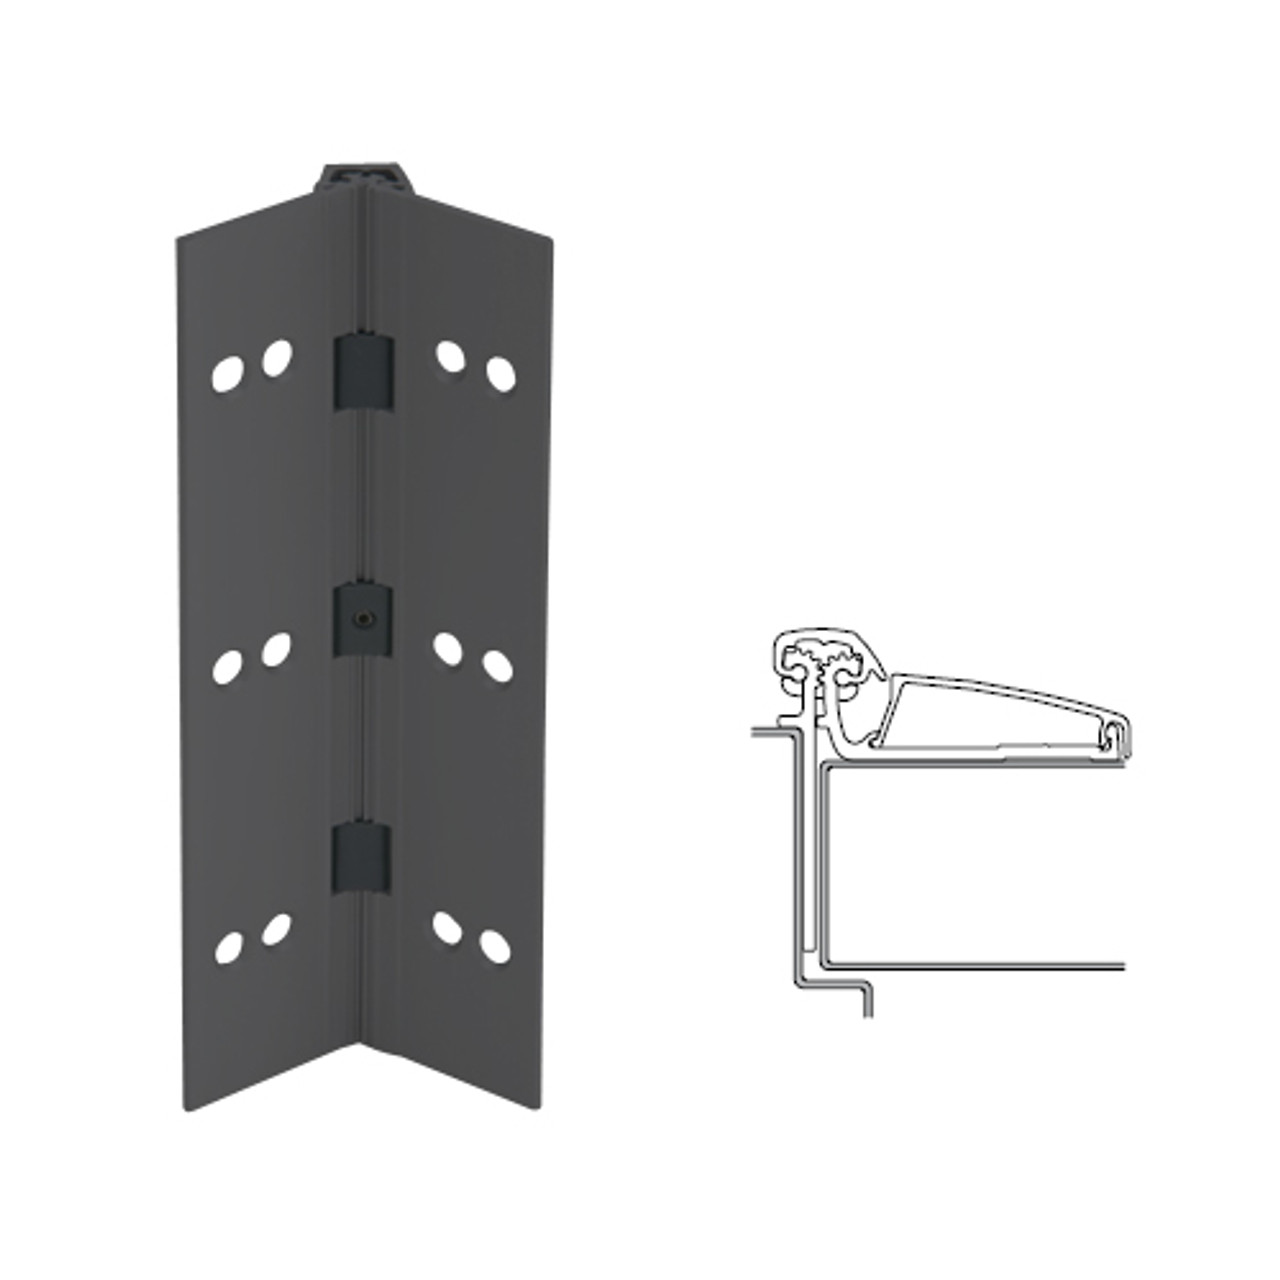 046XY-315AN-85-SECHM IVES Adjustable Half Surface Continuous Geared Hinges with Security Screws - Hex Pin Drive in Anodized Black